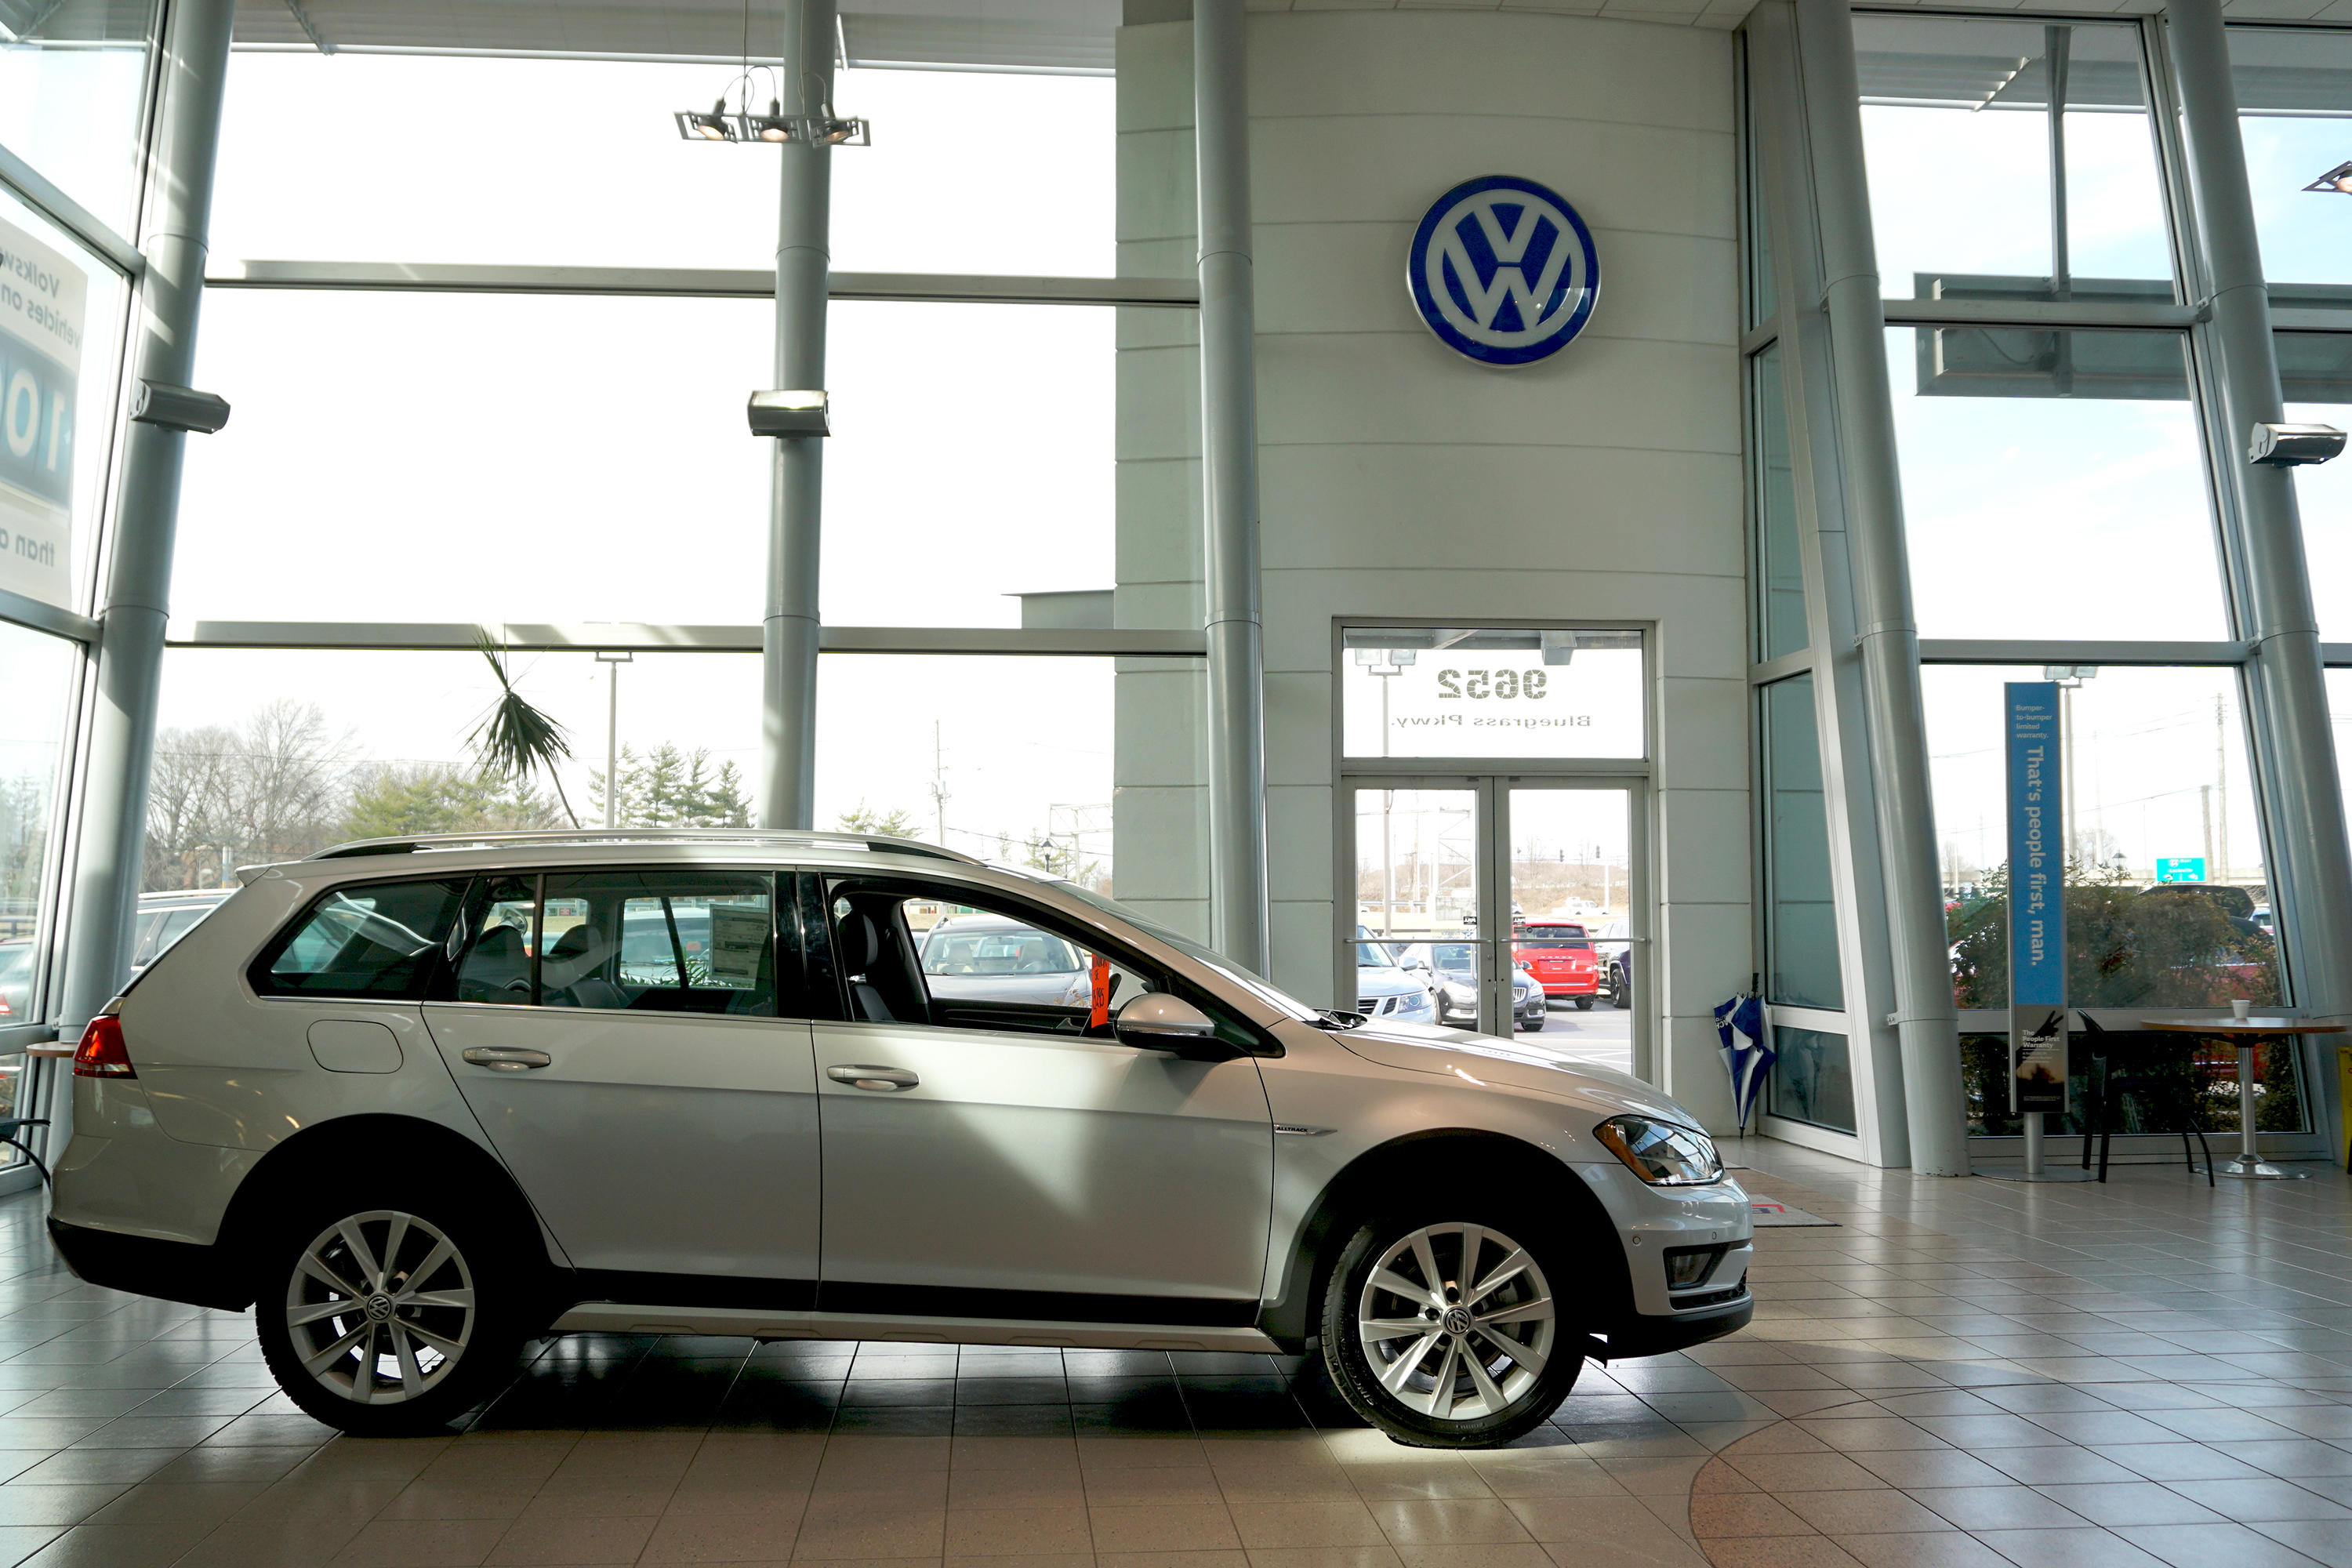 cars lot ky sale volkswagen louisville gti for s copart at